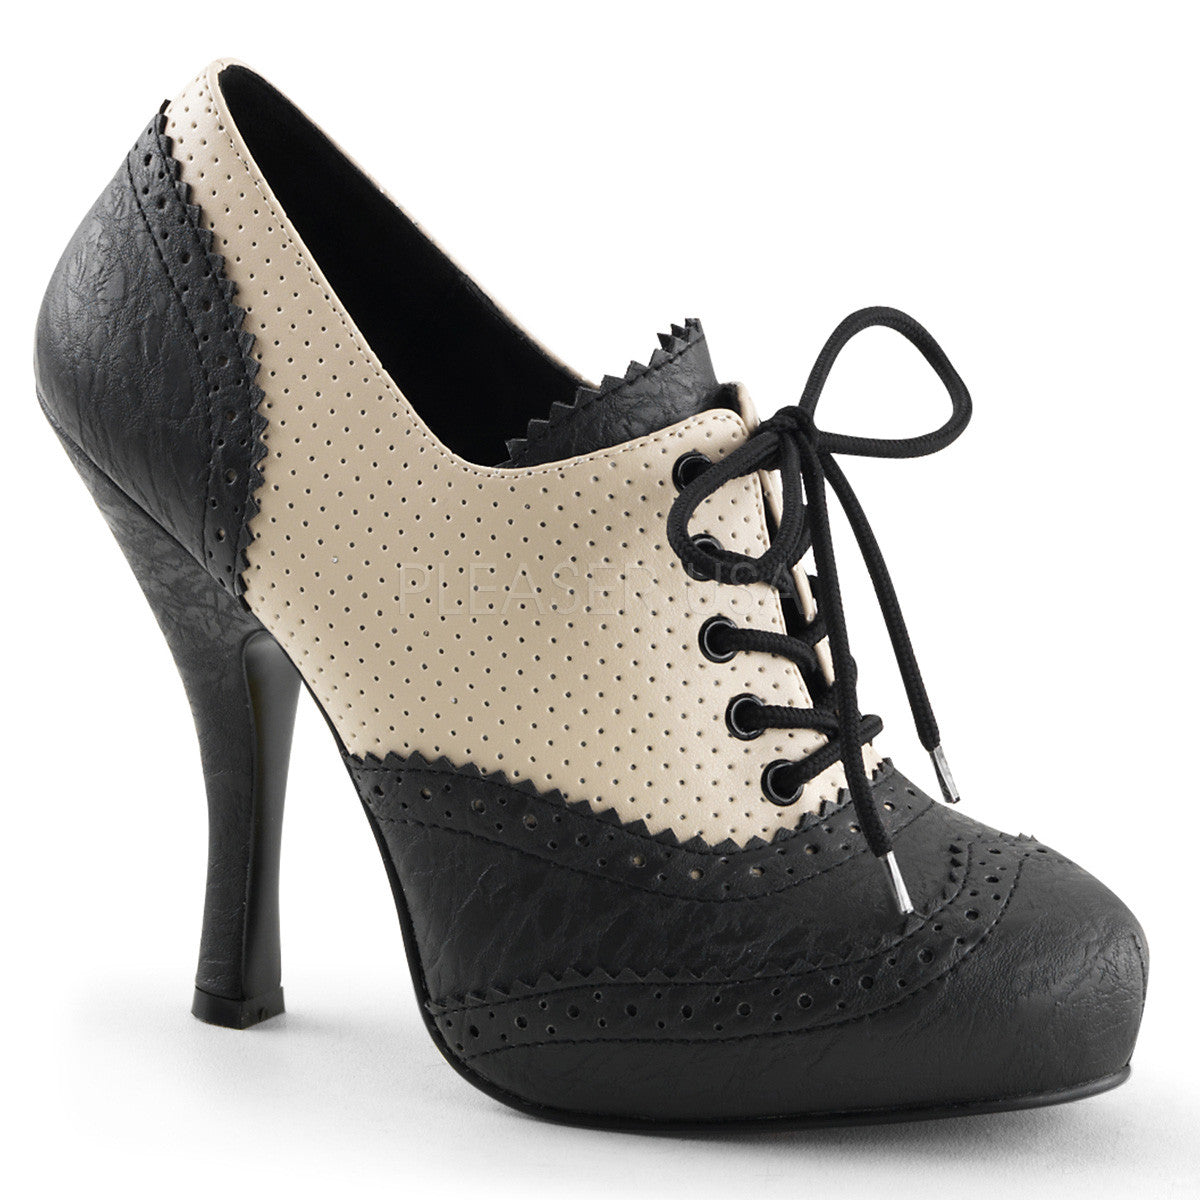 PINUP COUTURE CUTIEPIE-14 Cream-Black Distressed Pu Oxford - Shoecup.com - 1